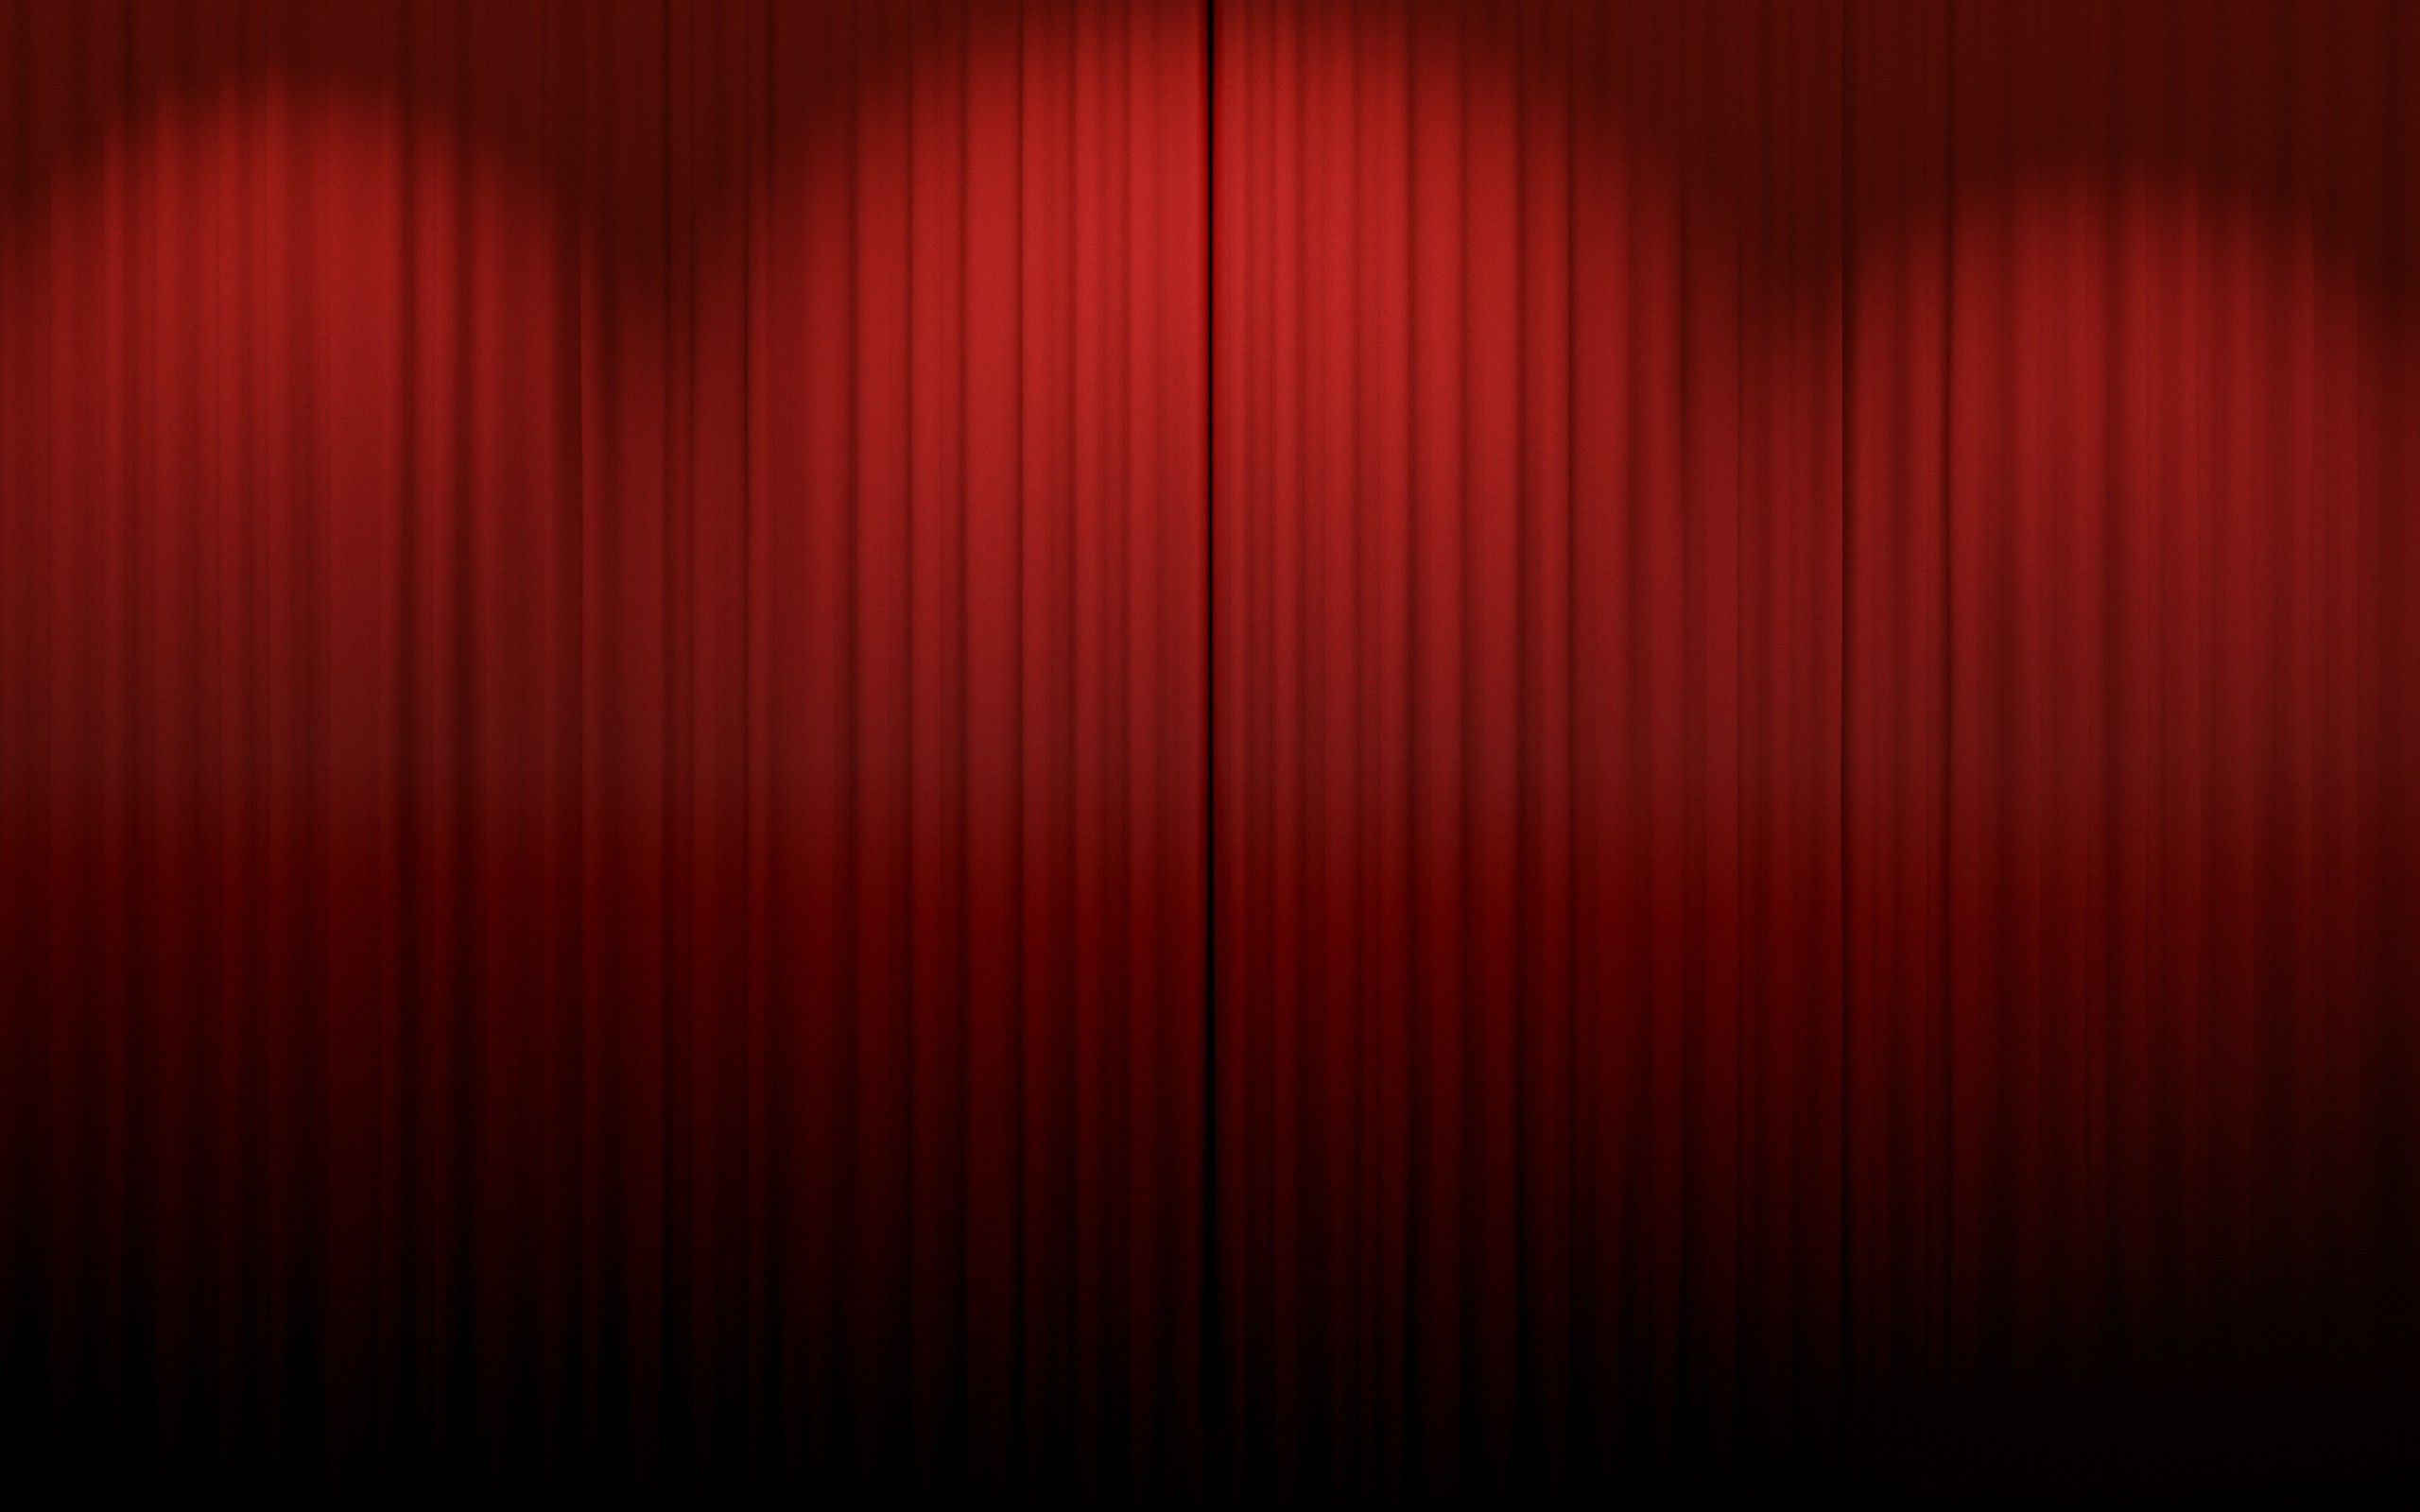 Red stage curtain with lights - Red Curtains Stage Red Curtain Stage Background Stage Curtain Border Red Curtains 00302826 Jpg 2560